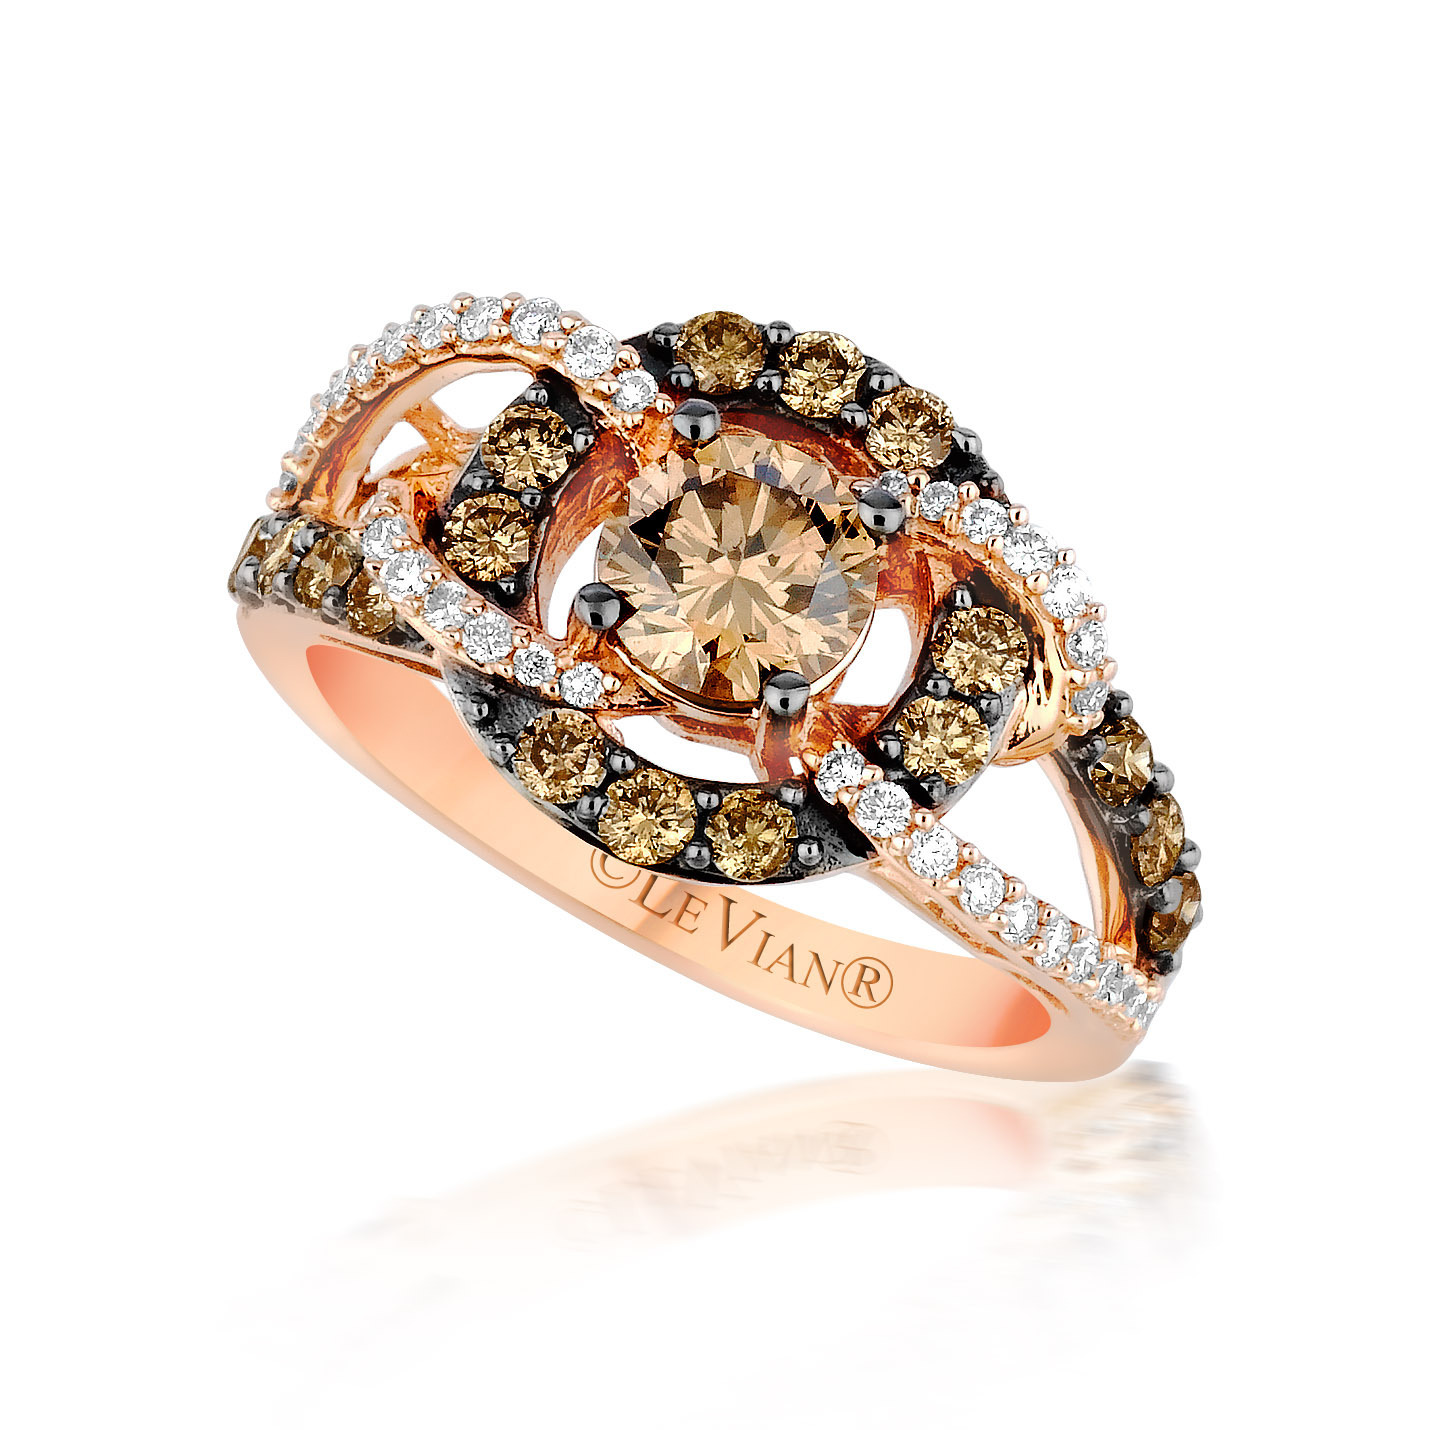 ernest jones ring morganite strawberry brand number diamond webstore gold peach rings vian l wedding product jewellery le